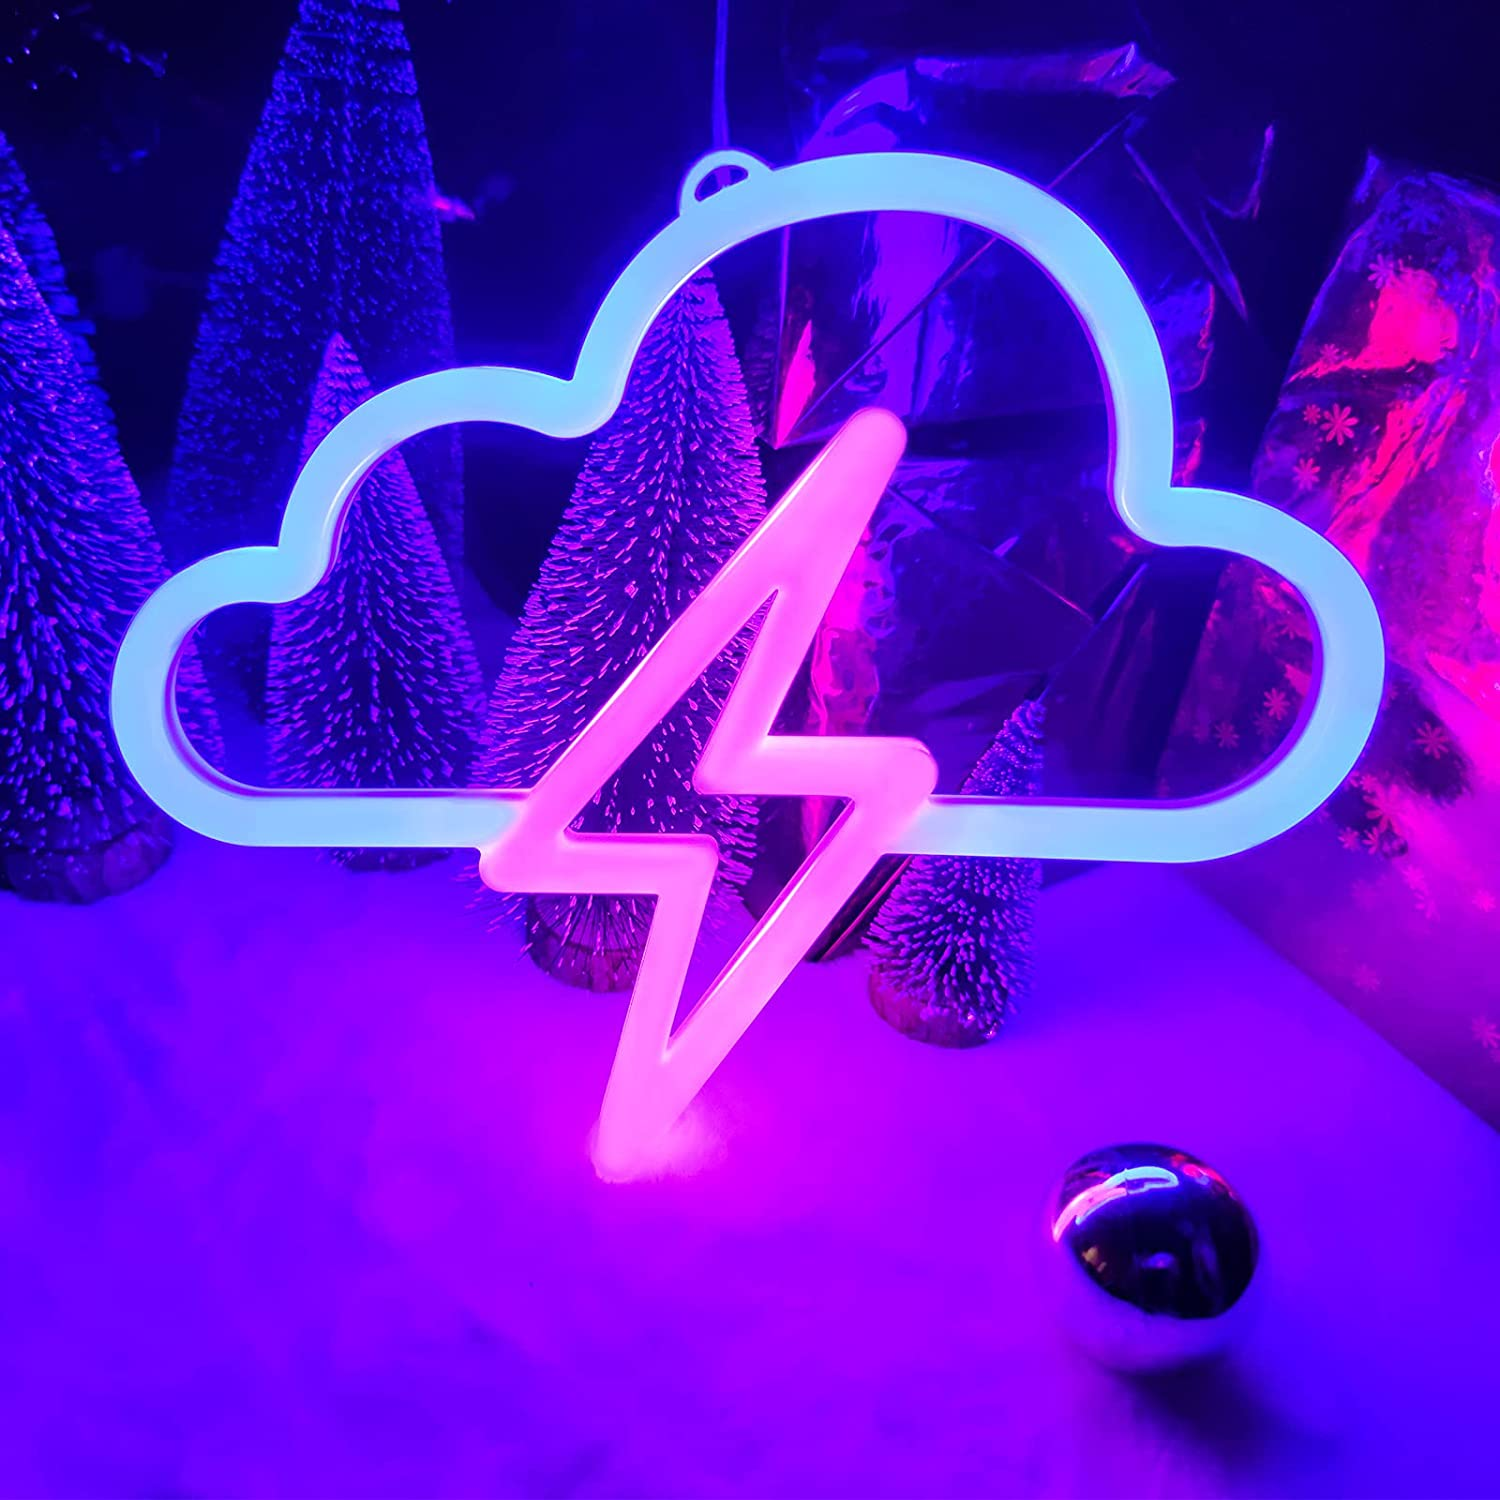 Cloud and Lightning Neon Signs,Hanging Neon Sign Light,LED Neon Light Wall Decor with Hanging Hook Holes,Battery or USB Powered Light Up Neon Sign for Bedroom, Bar, Party, Wedding Cloud Lightning